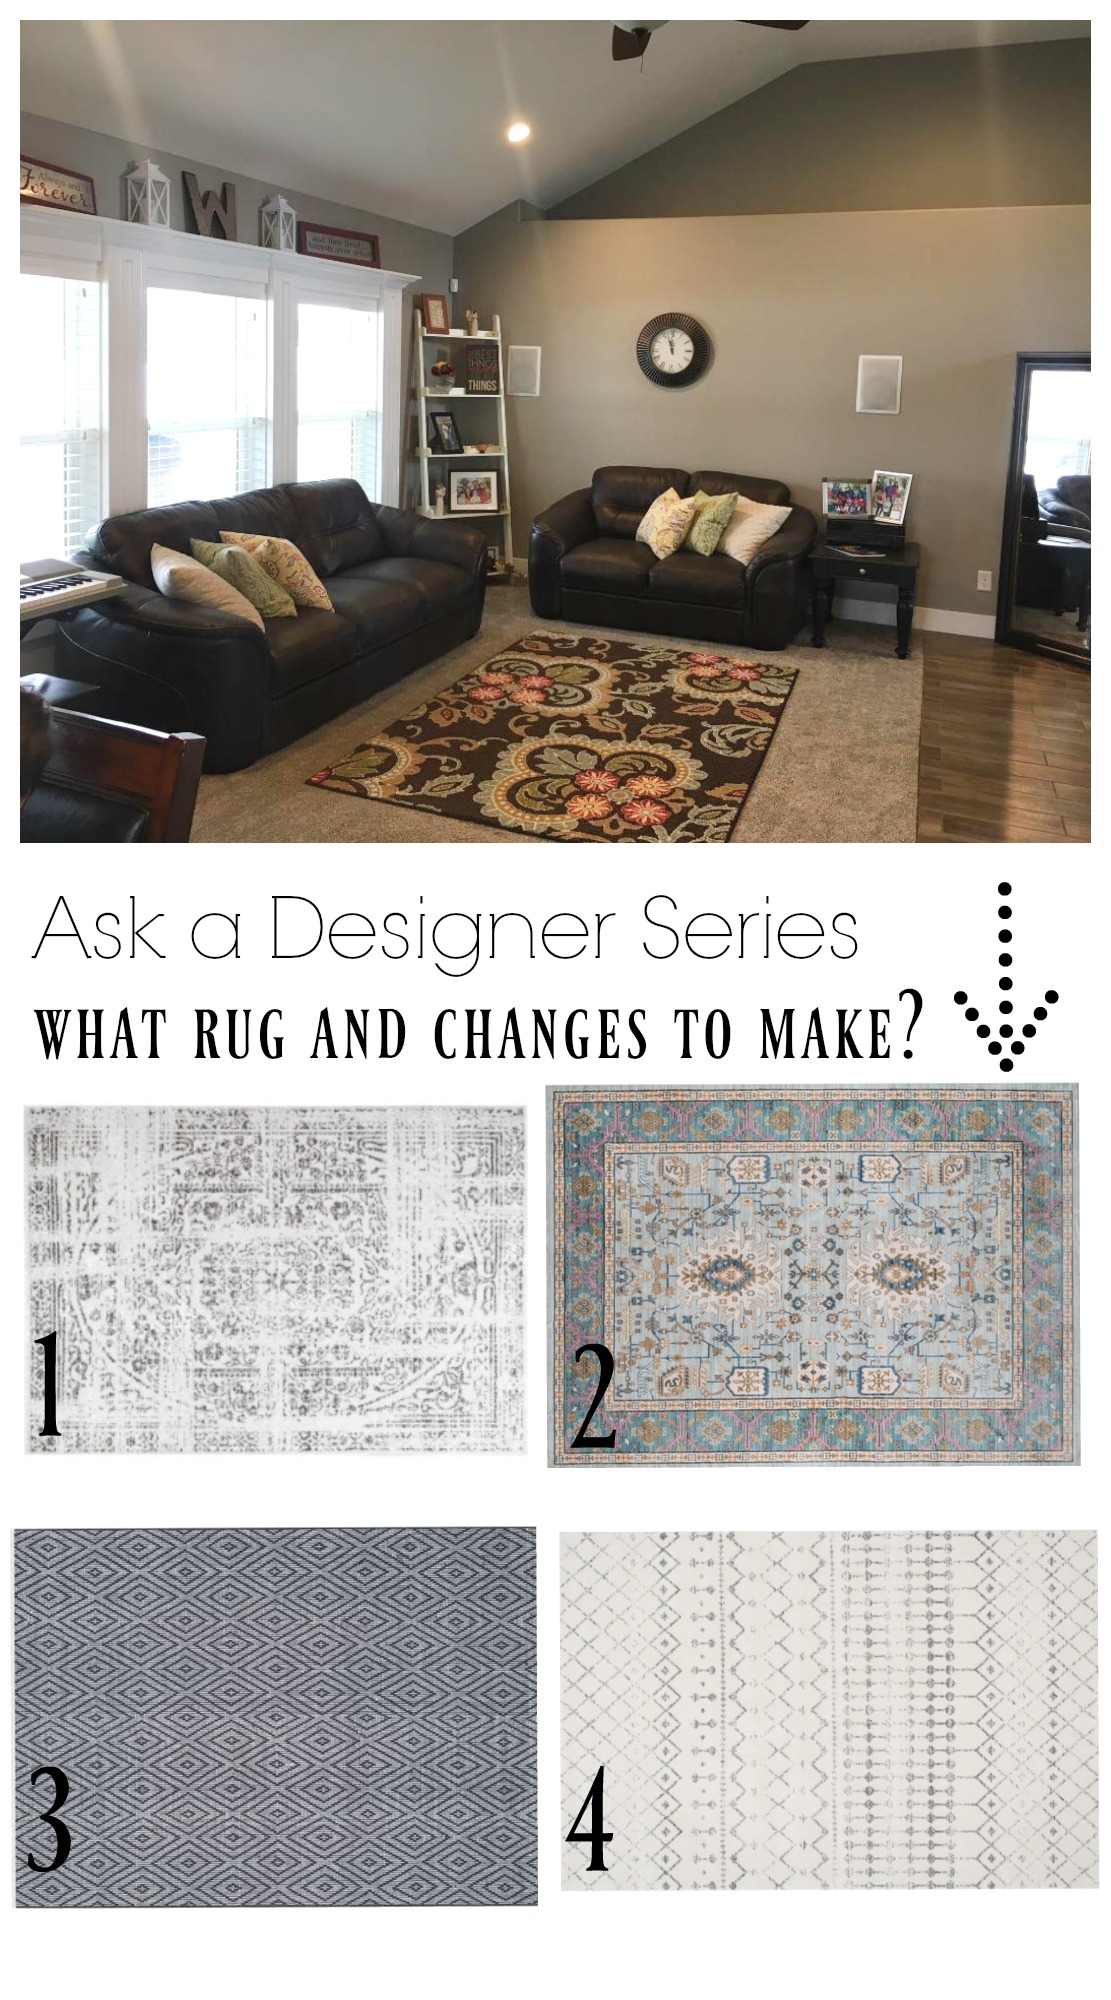 Ask a Designer Series- What Rug to do in our Family Room?